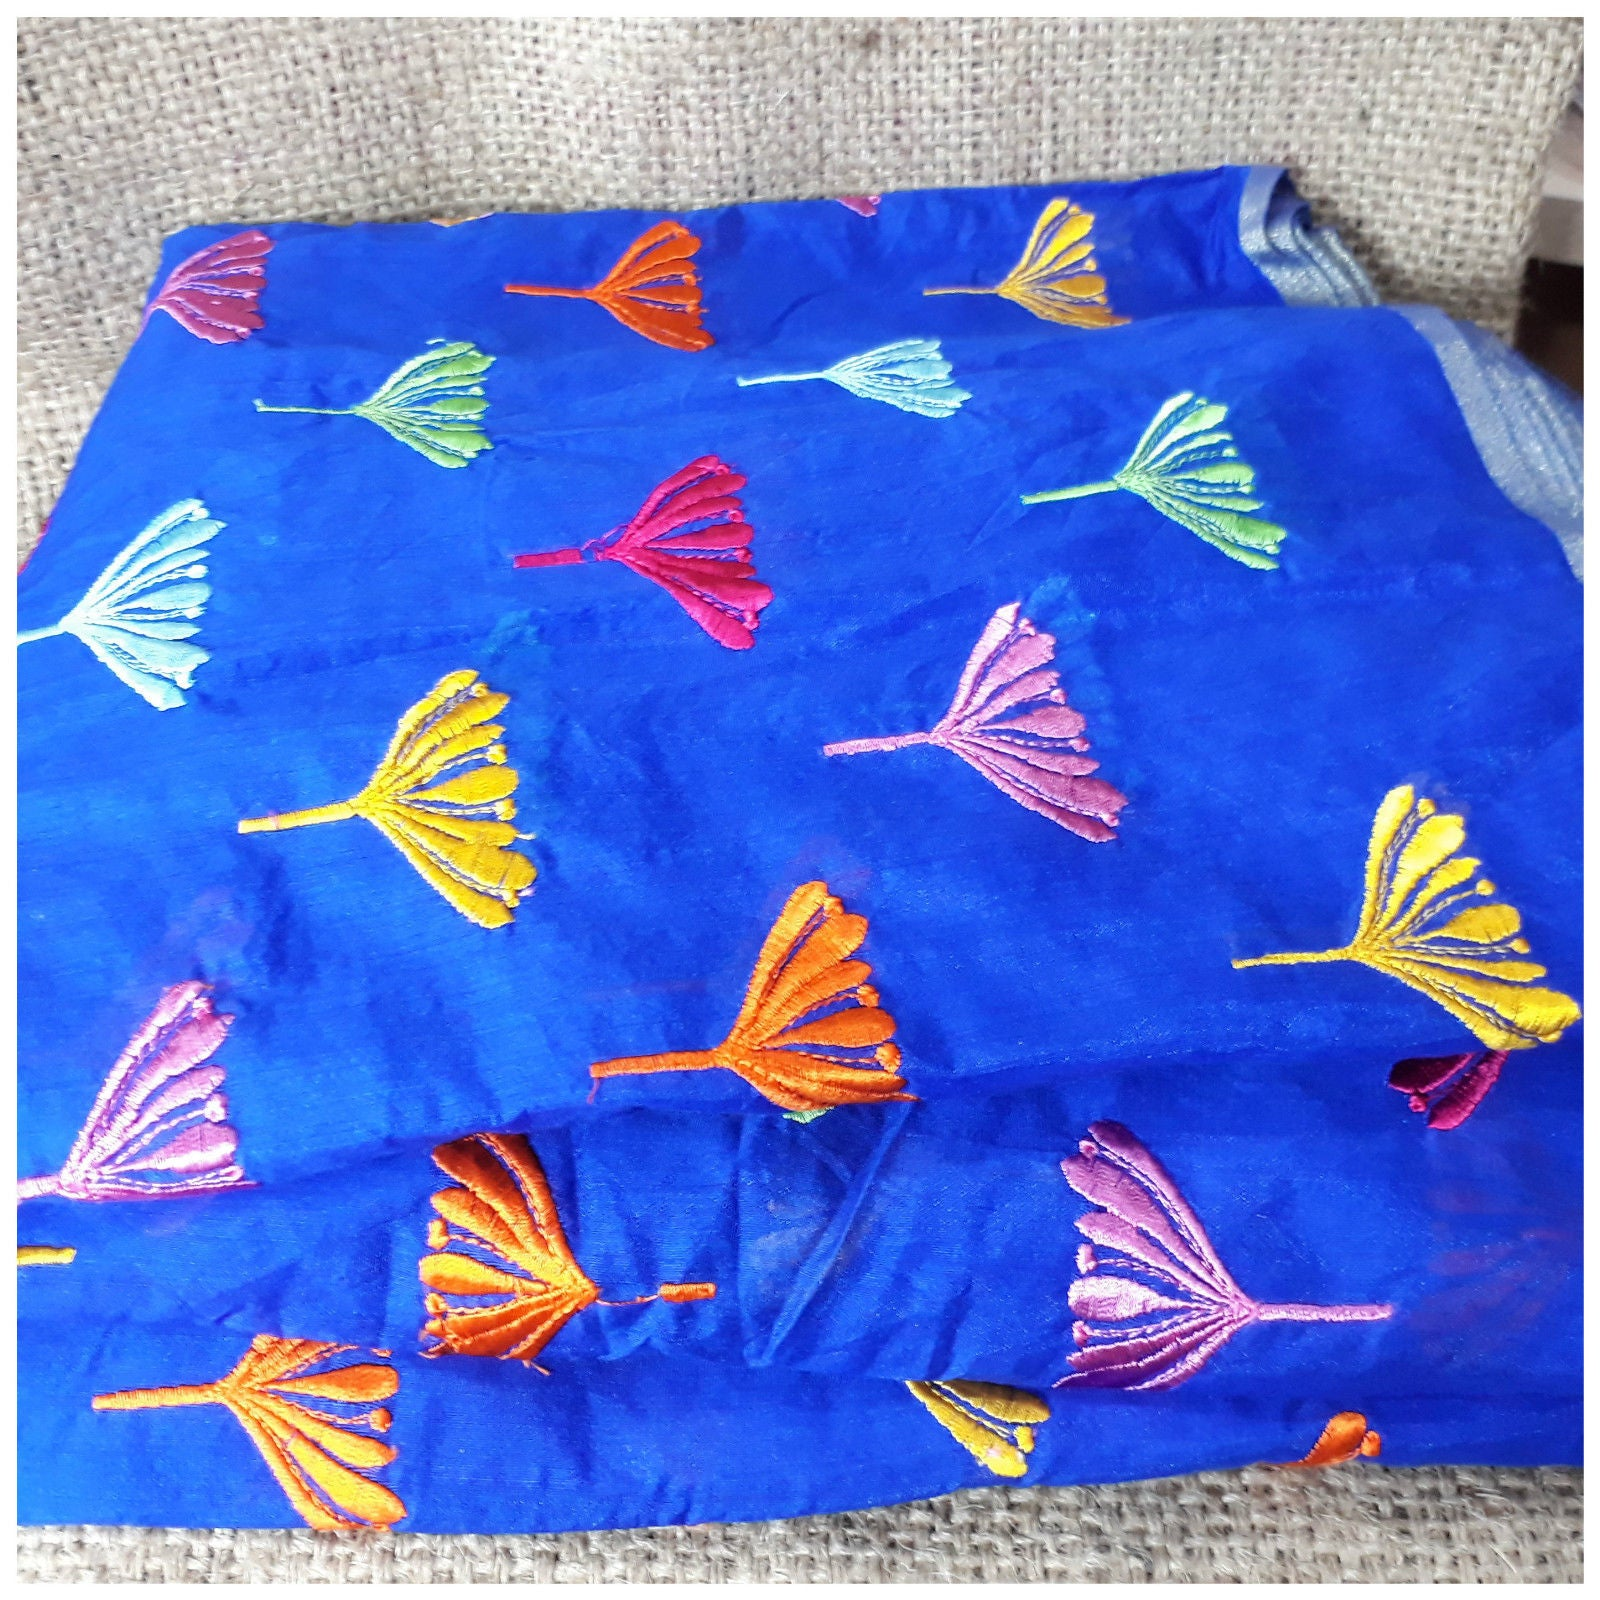 running fabrics online buy embroidered fabric Chanderi Cotton Royal Blue 43 inches Wide Blue